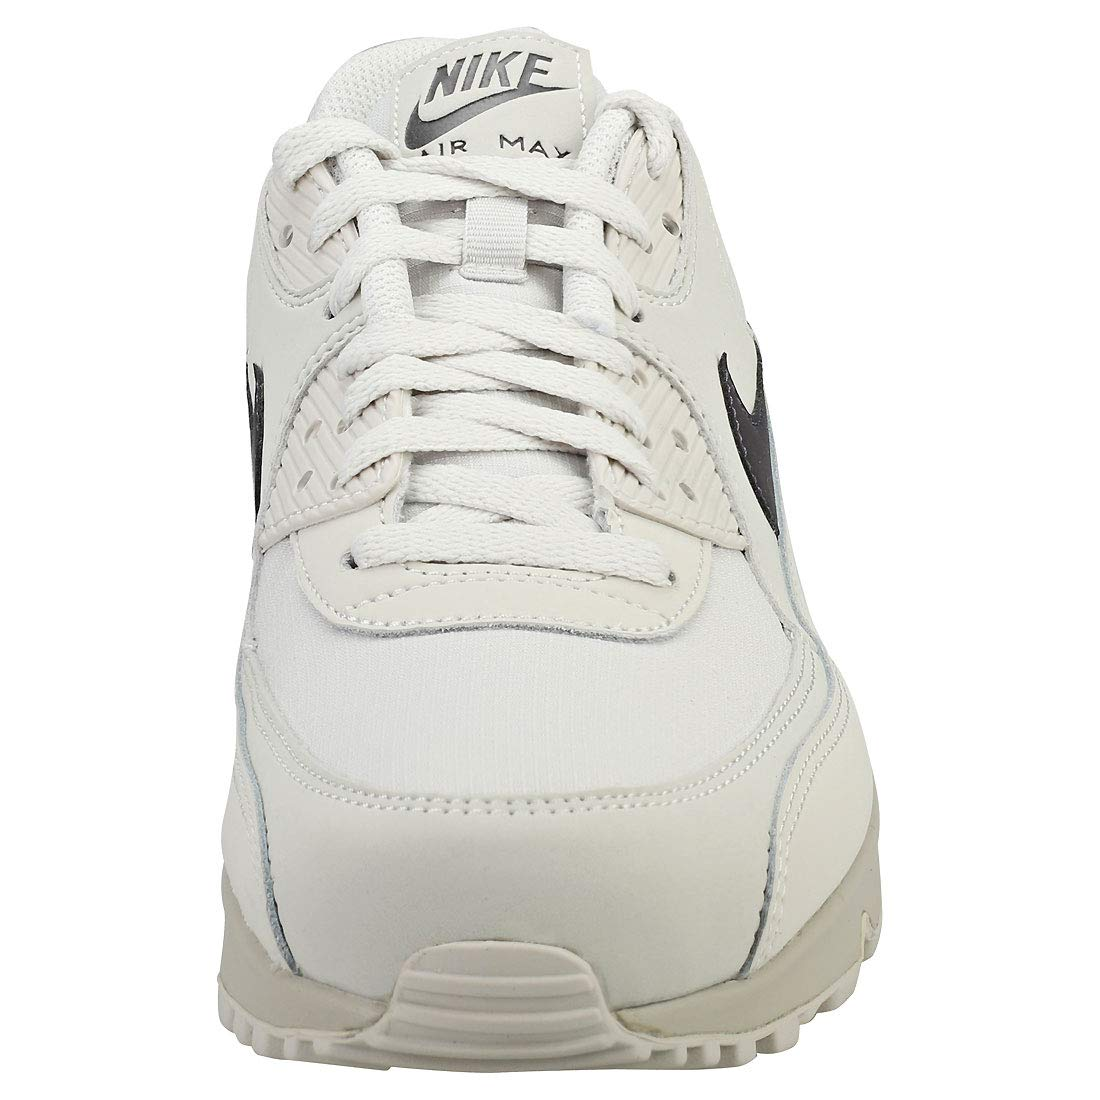 timeless design 9a84e 07851 Nike Men s Air Max 90 Essential Training Shoes  Amazon.co.uk  Shoes   Bags